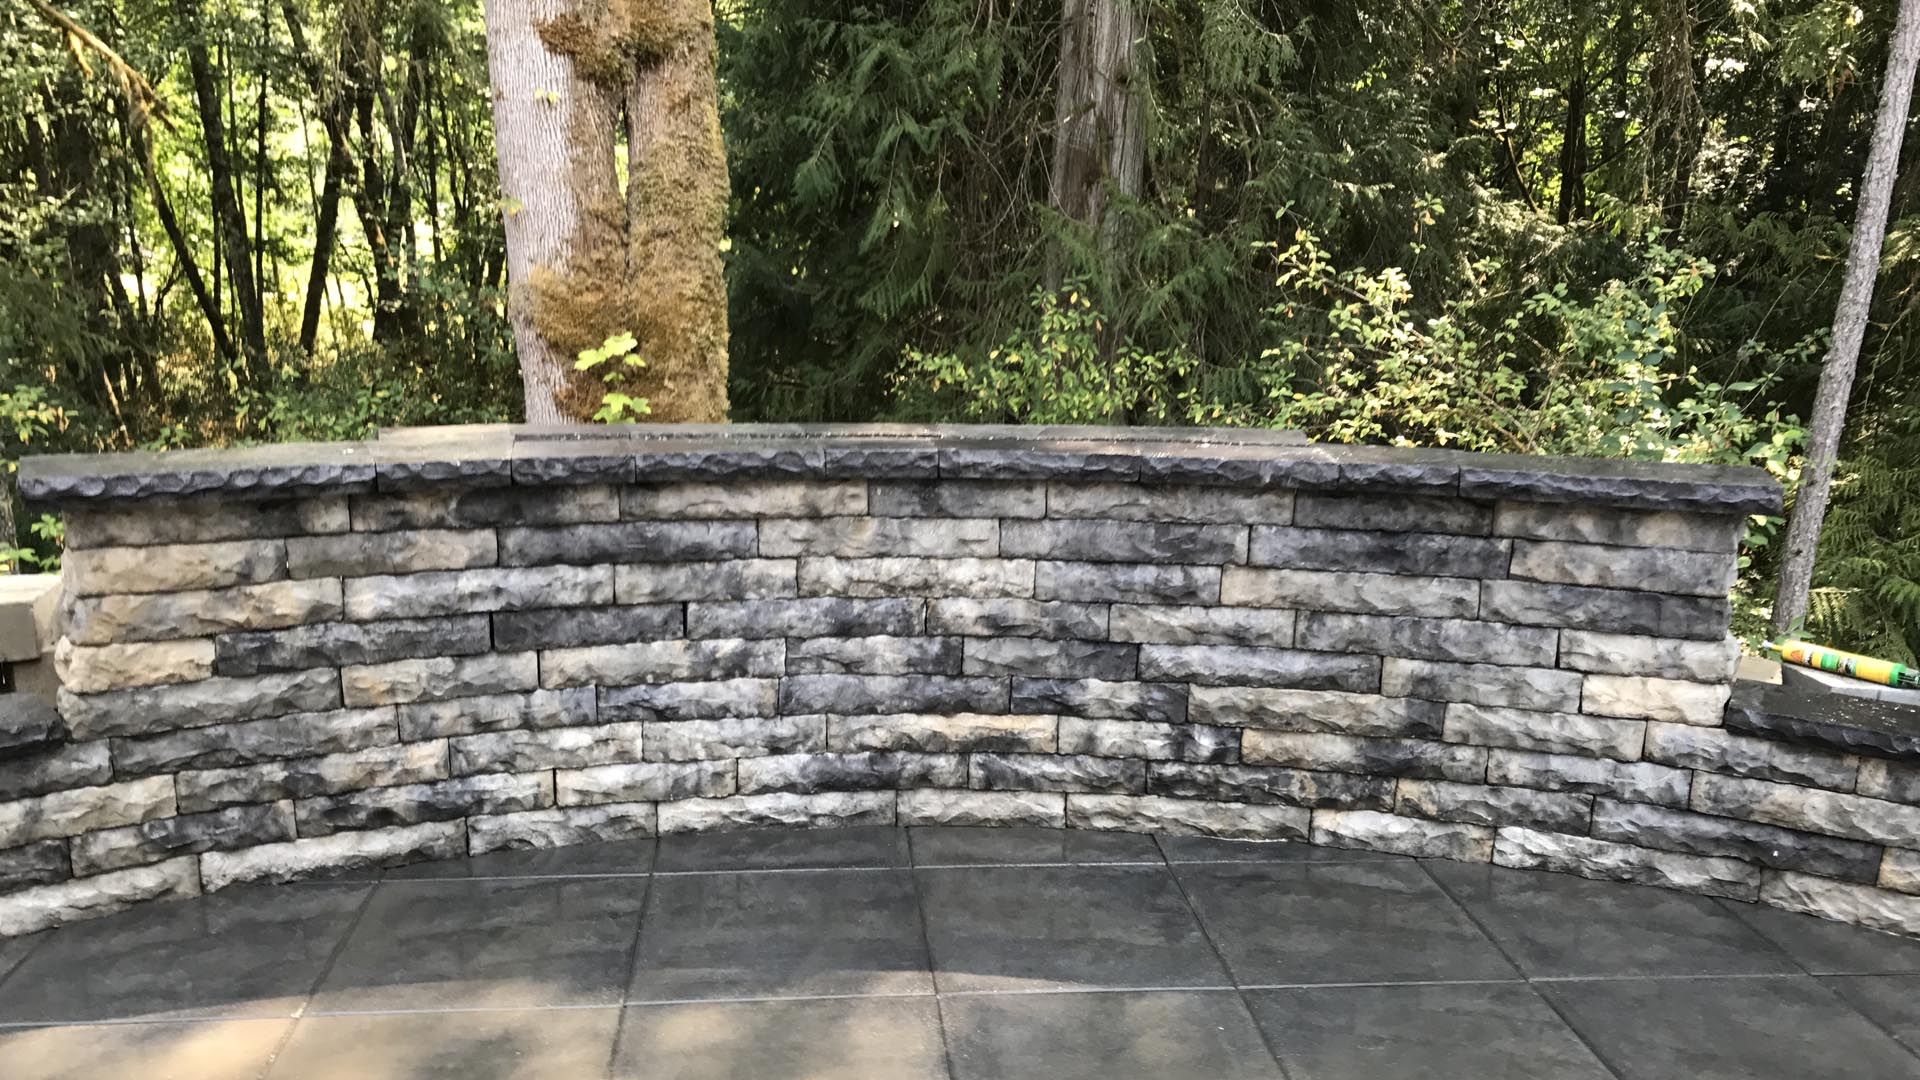 Millions Custom Landscaping Hardscaping, Retaining Walls and Decks slide 1